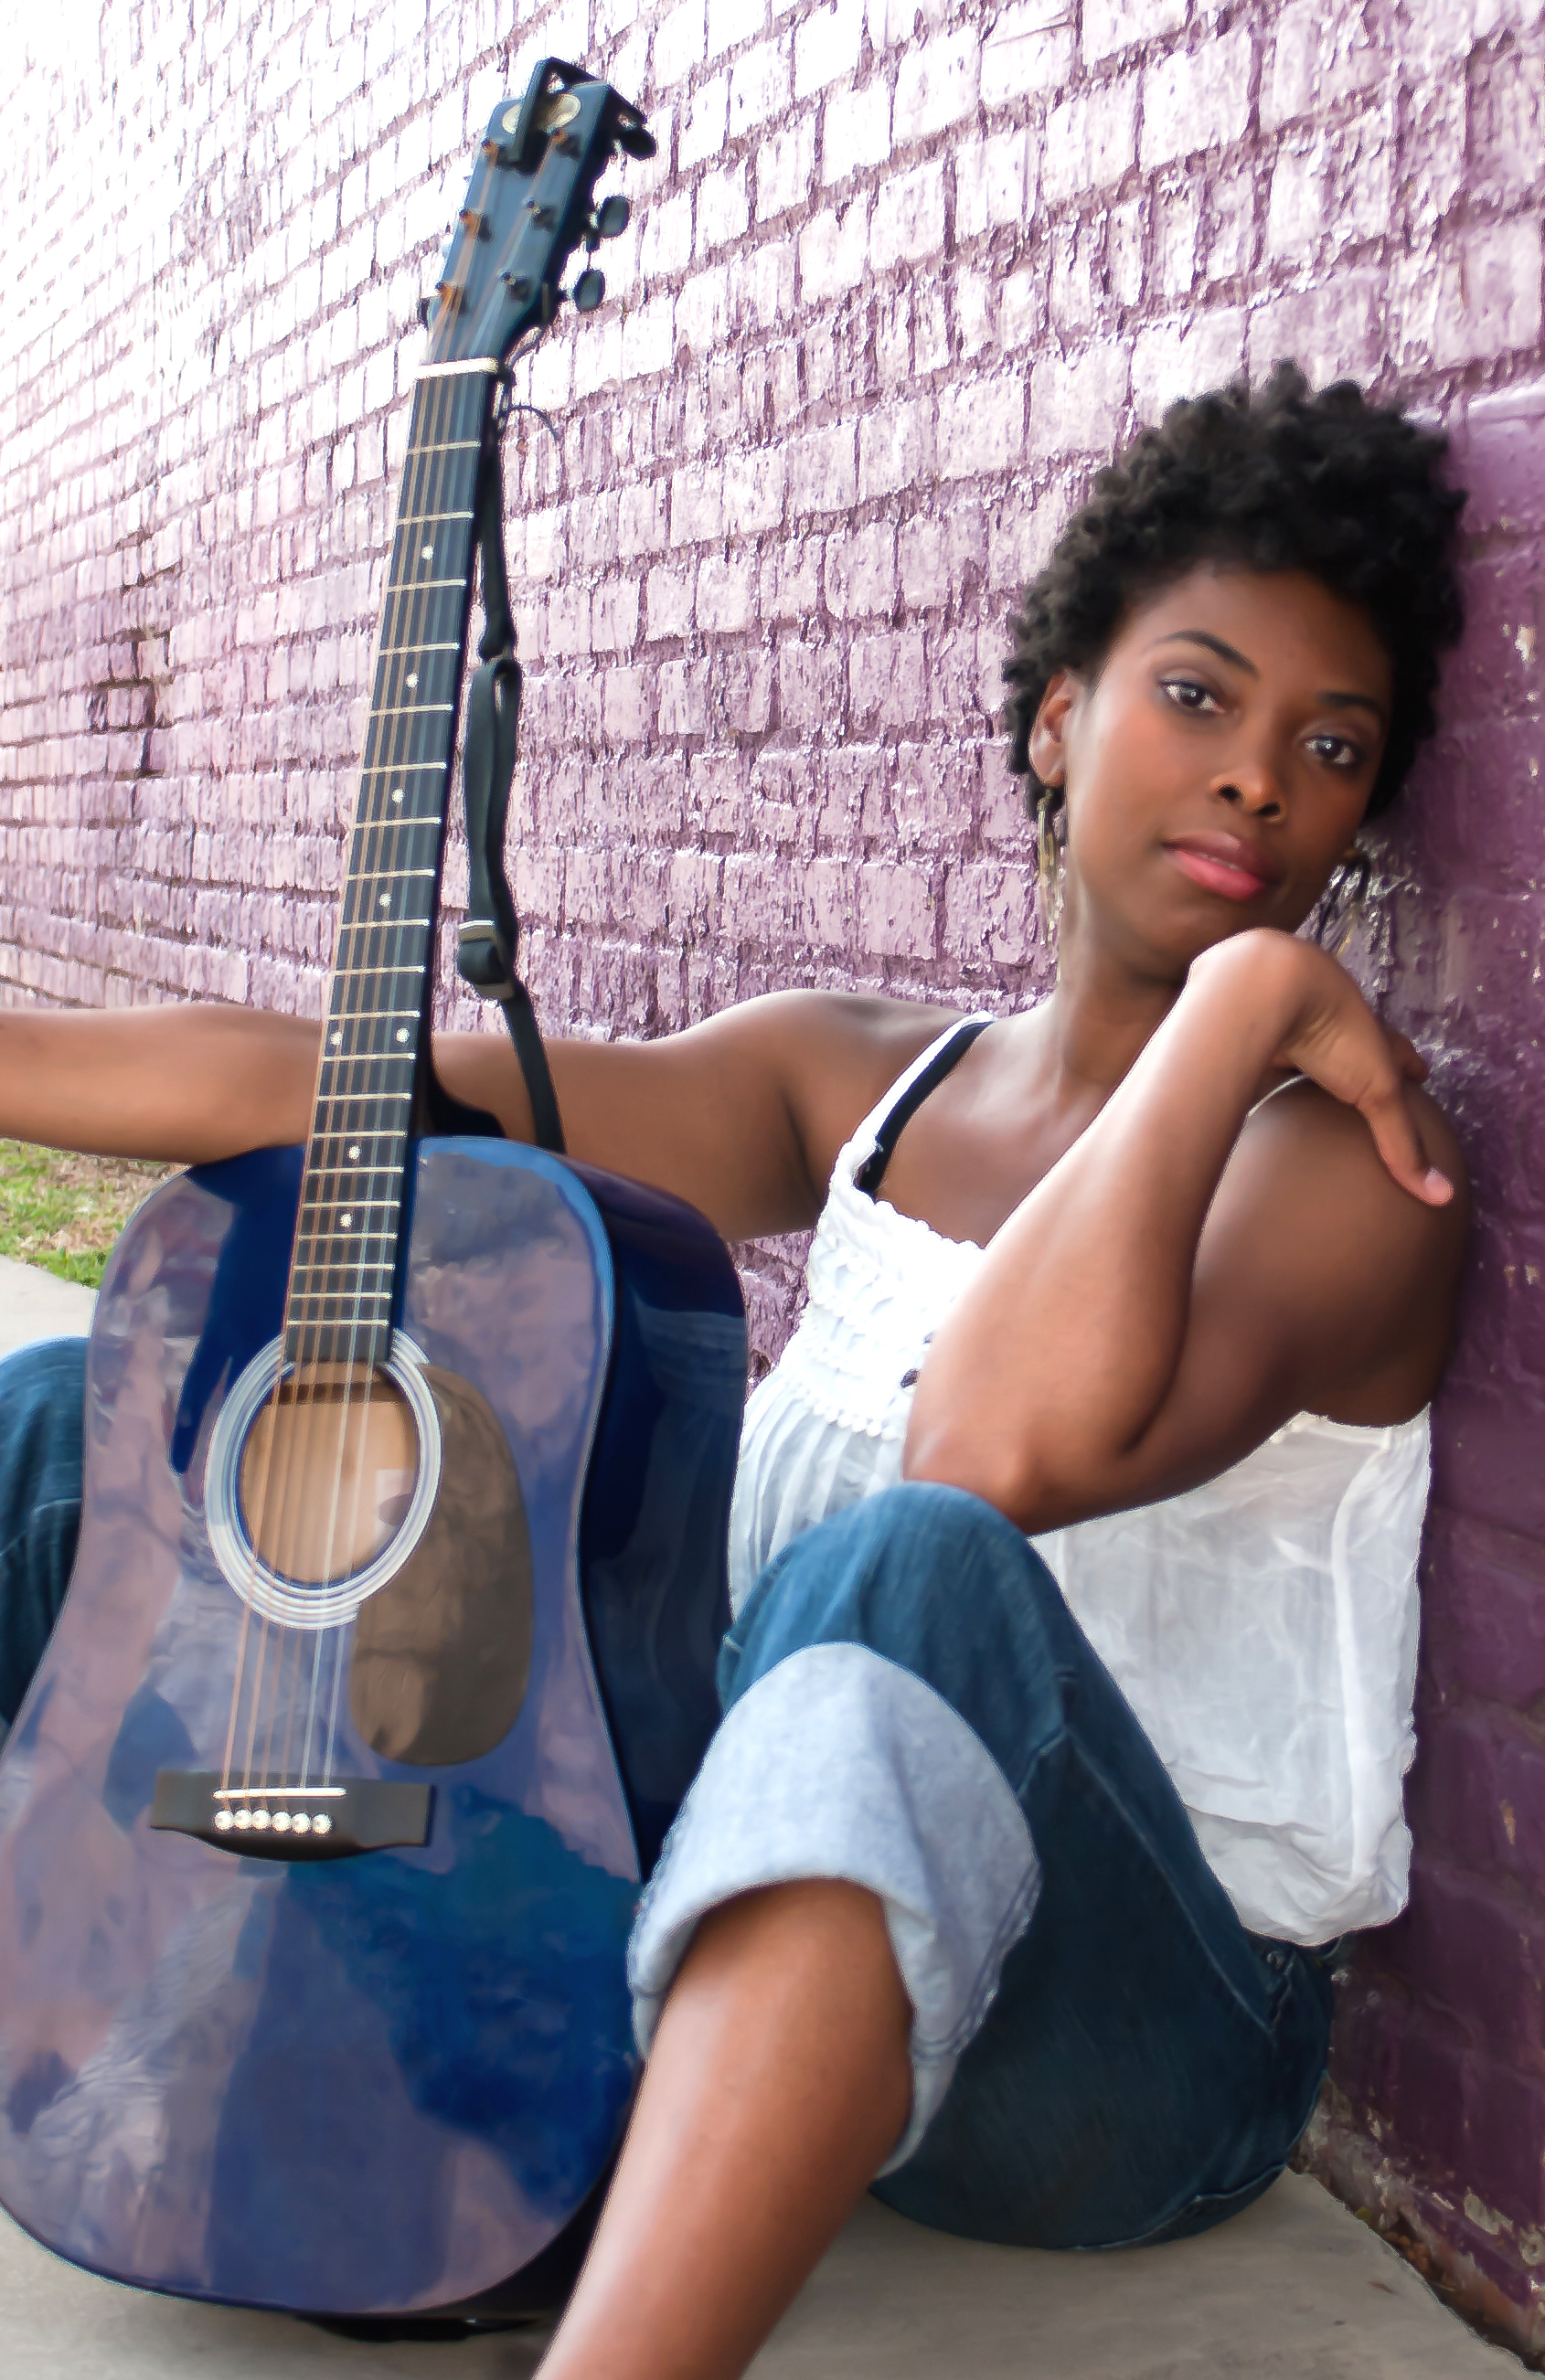 My first photo shoot in Charlotte, when I had no idea how things would turn out!